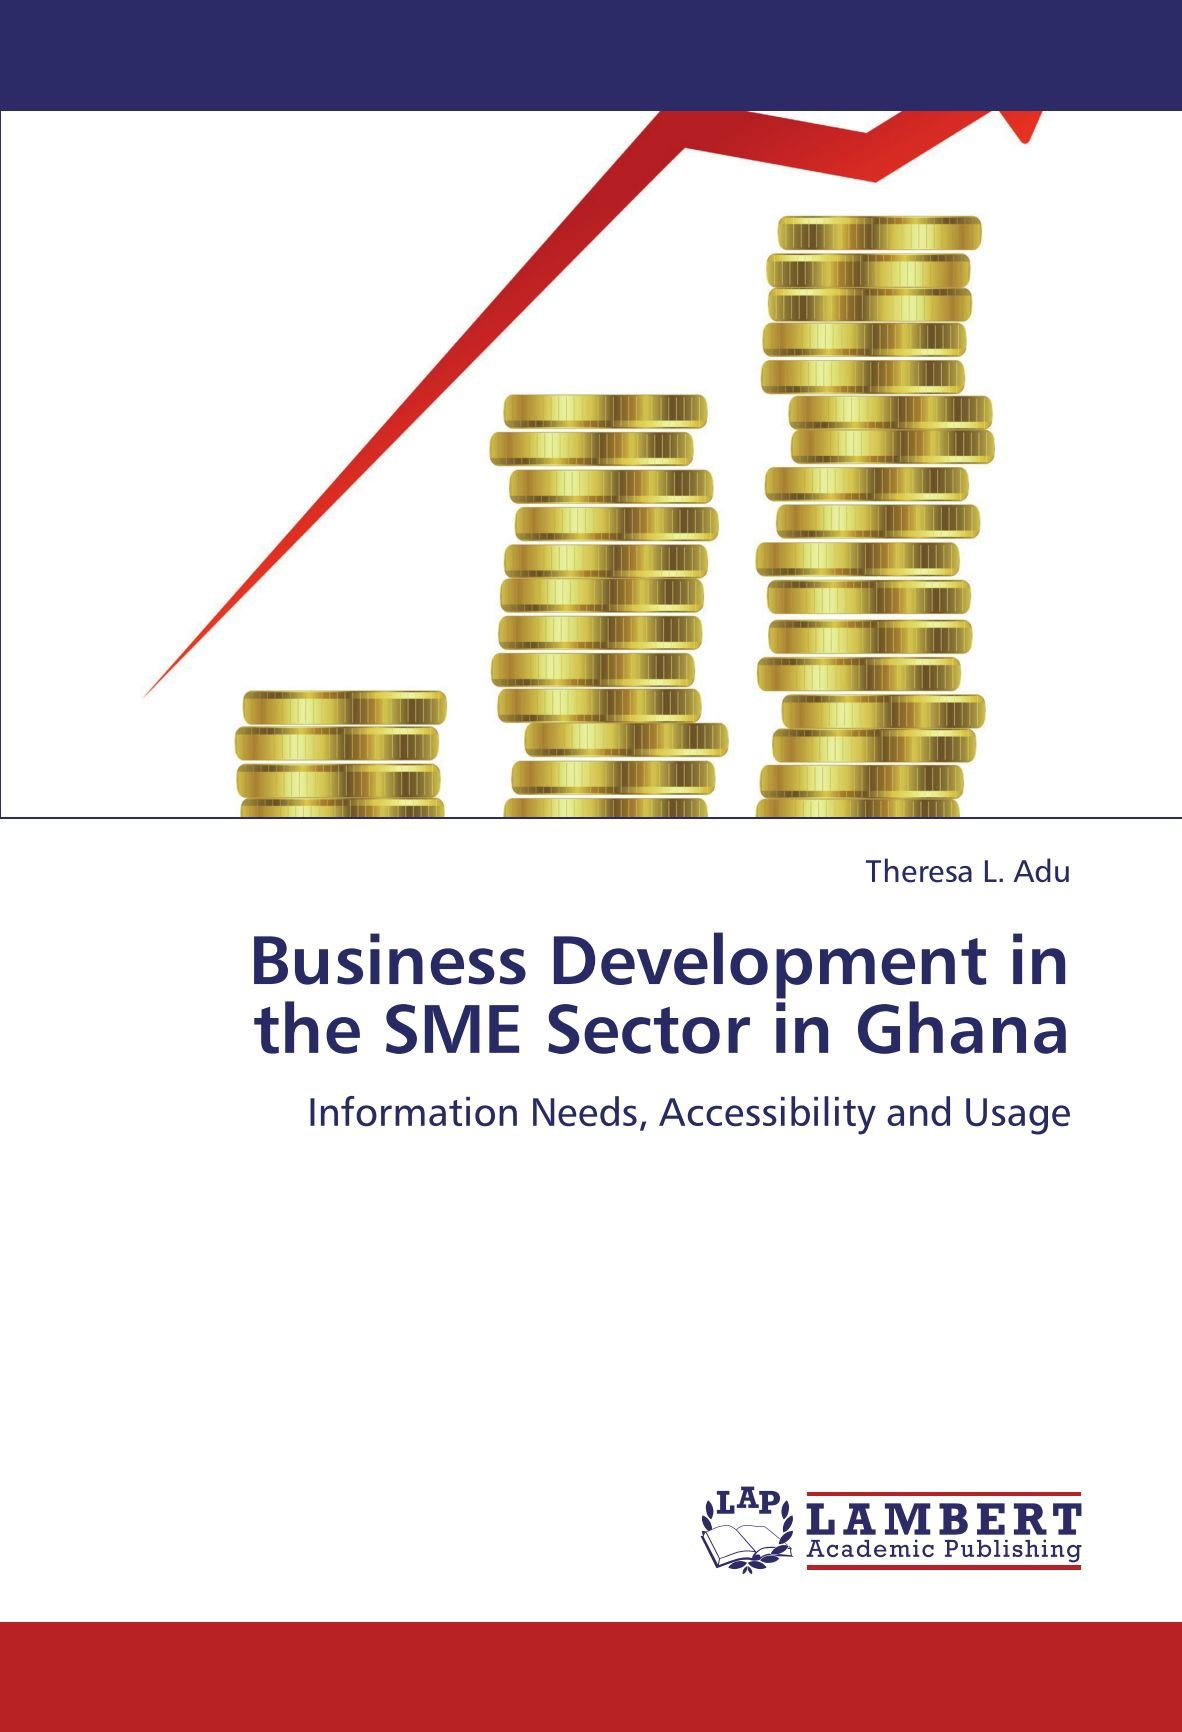 Download Business Development in the SME Sector in Ghana: Information Needs, Accessibility and Usage PDF